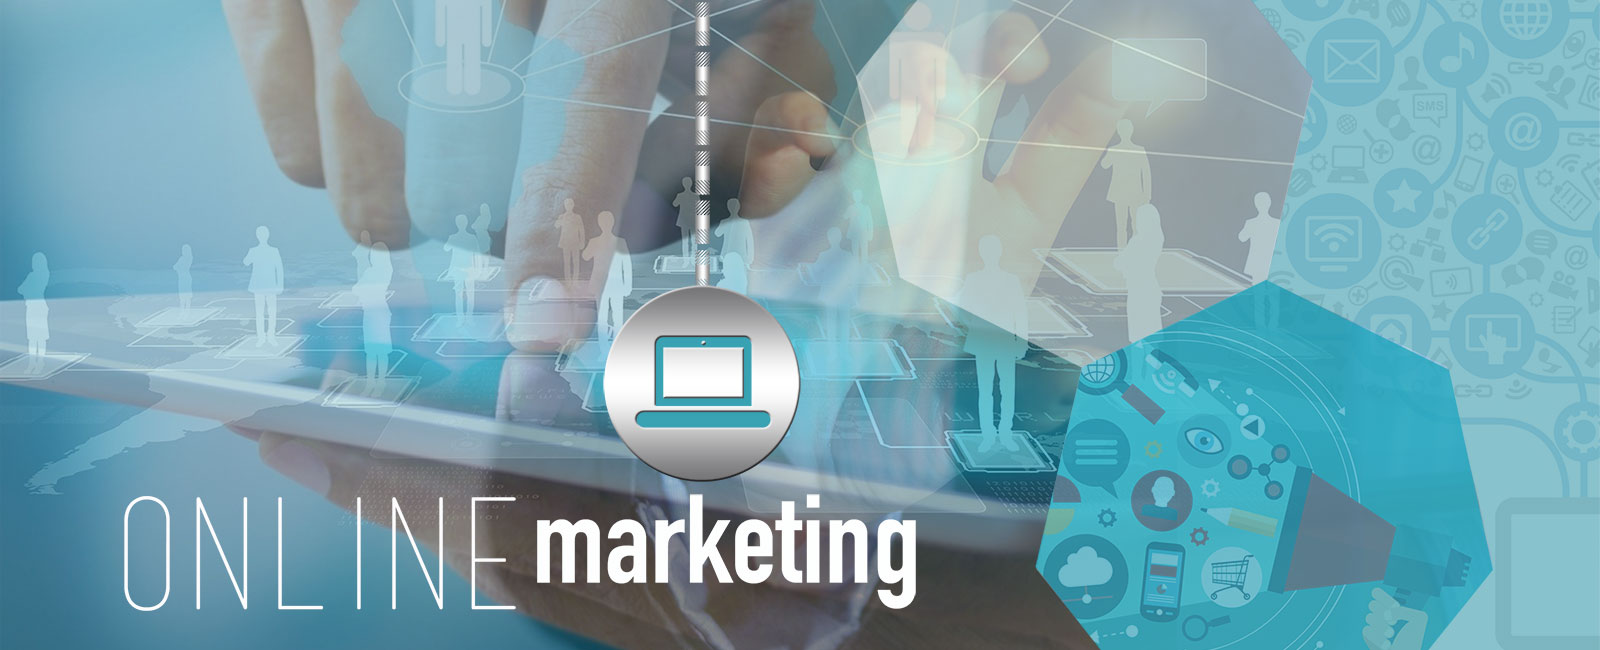 01-online-marketing